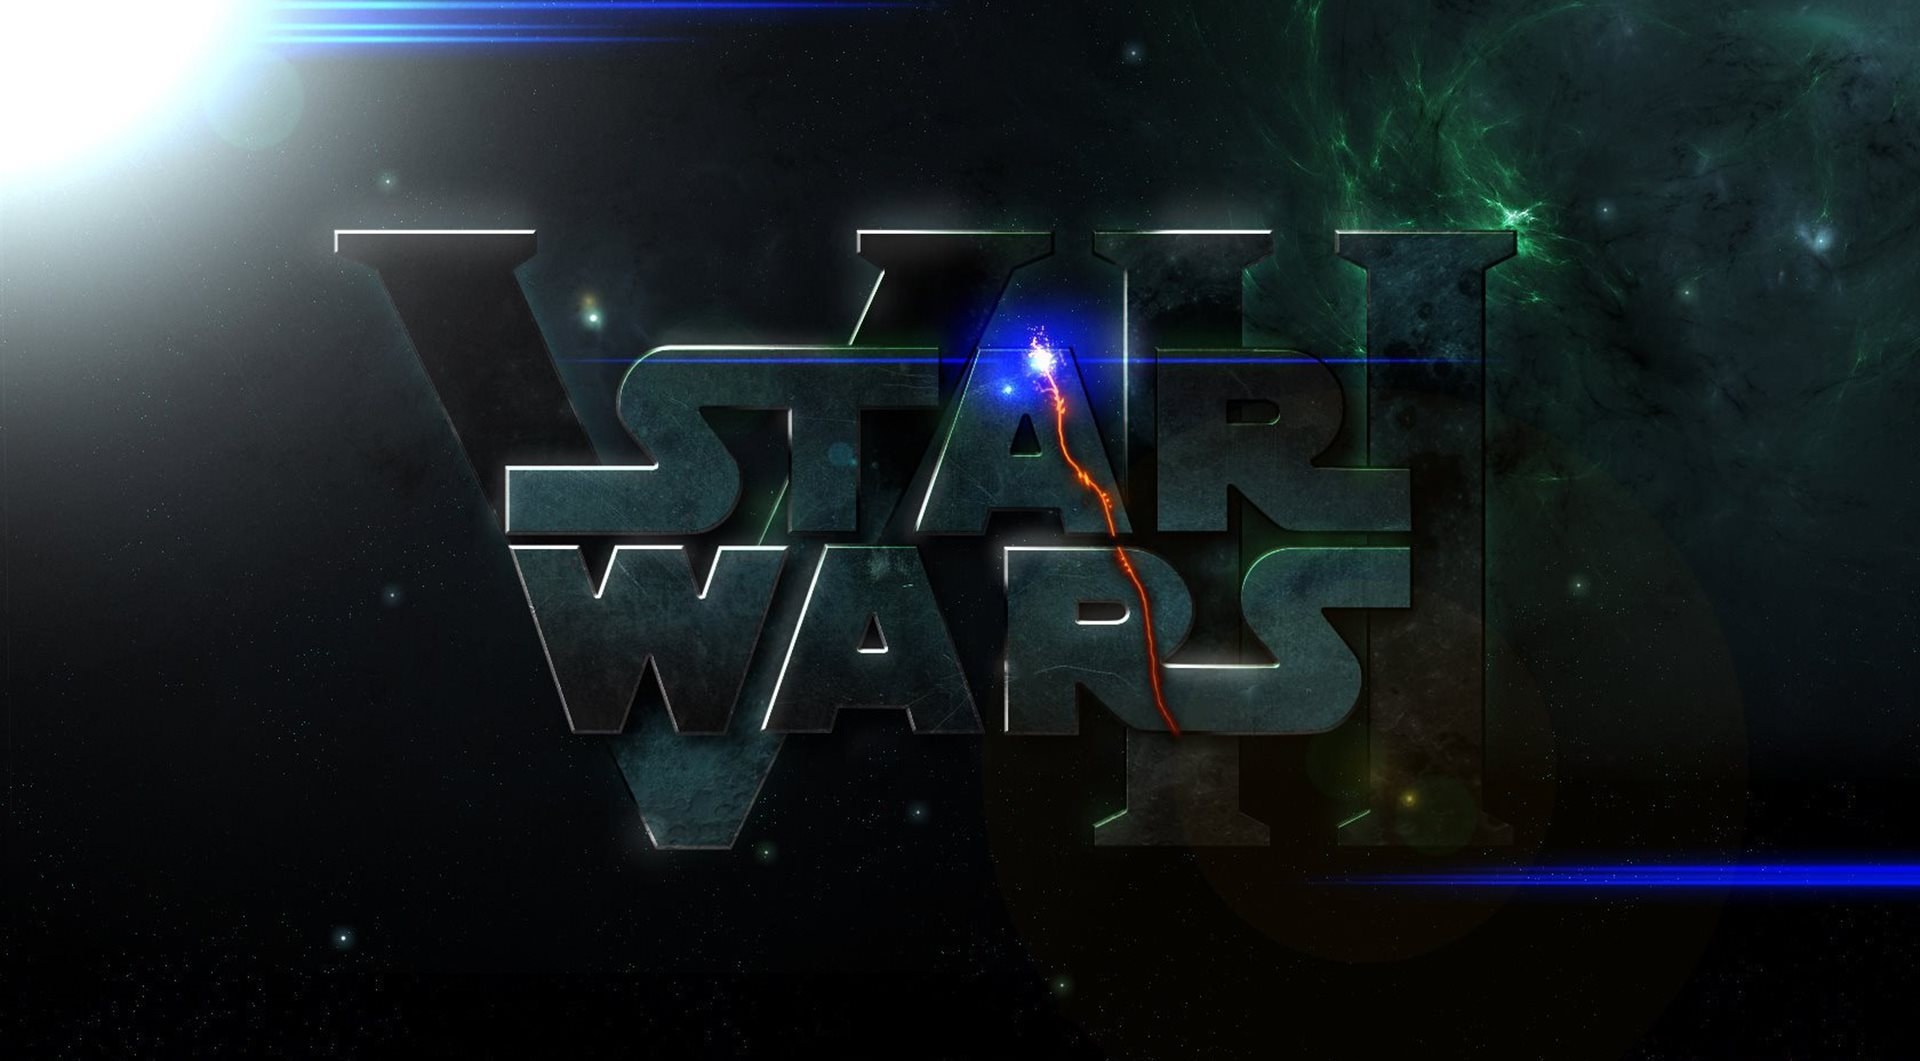 Star Wars Episode VII The Force Awakens 2015 Poster 1920x1061